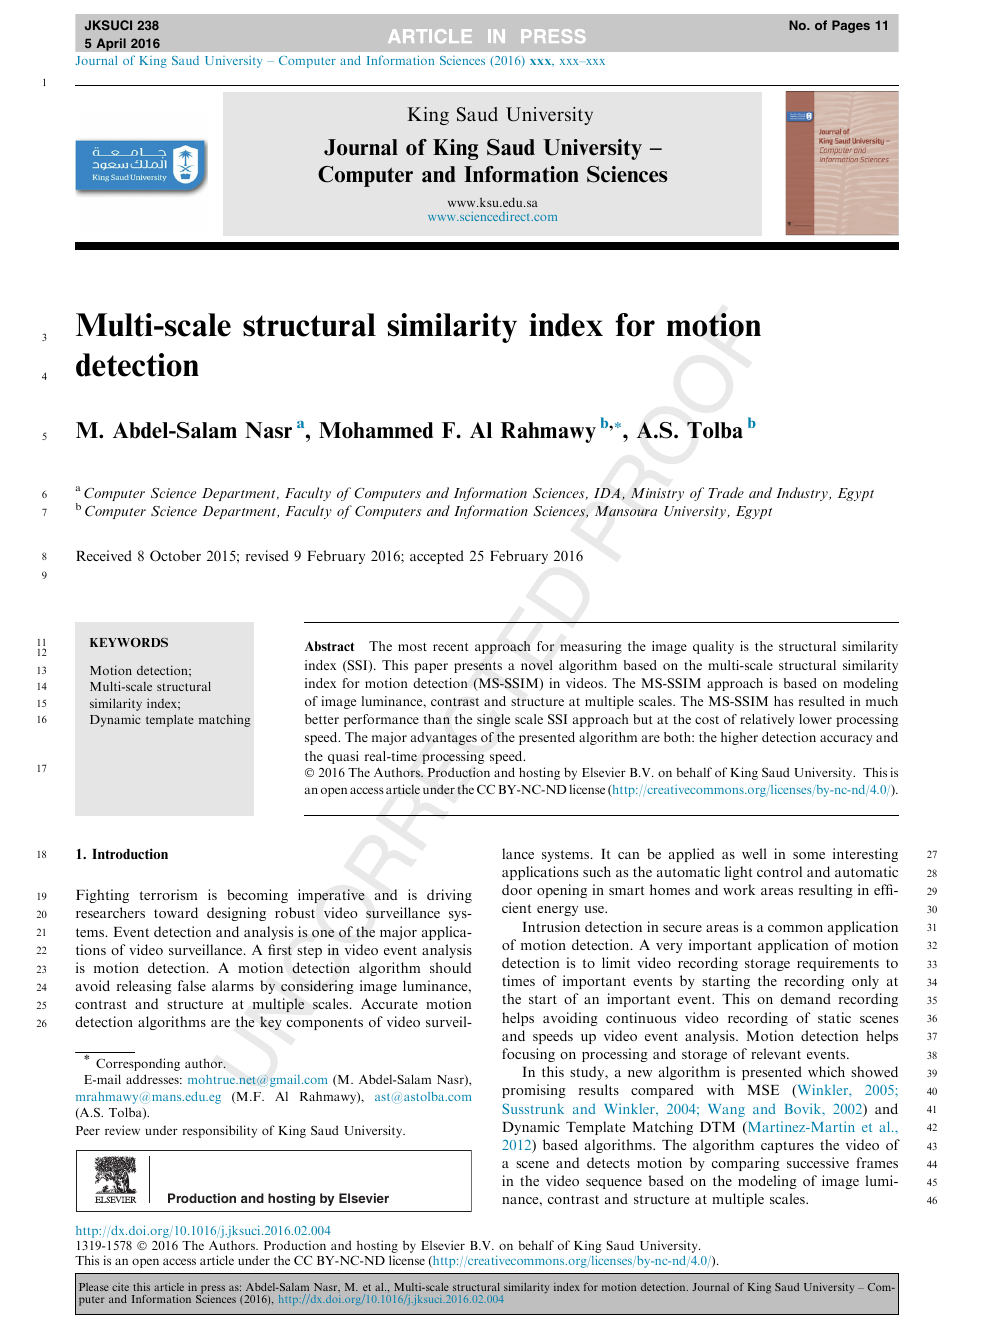 Multi-scale structural similarity index for motion detection